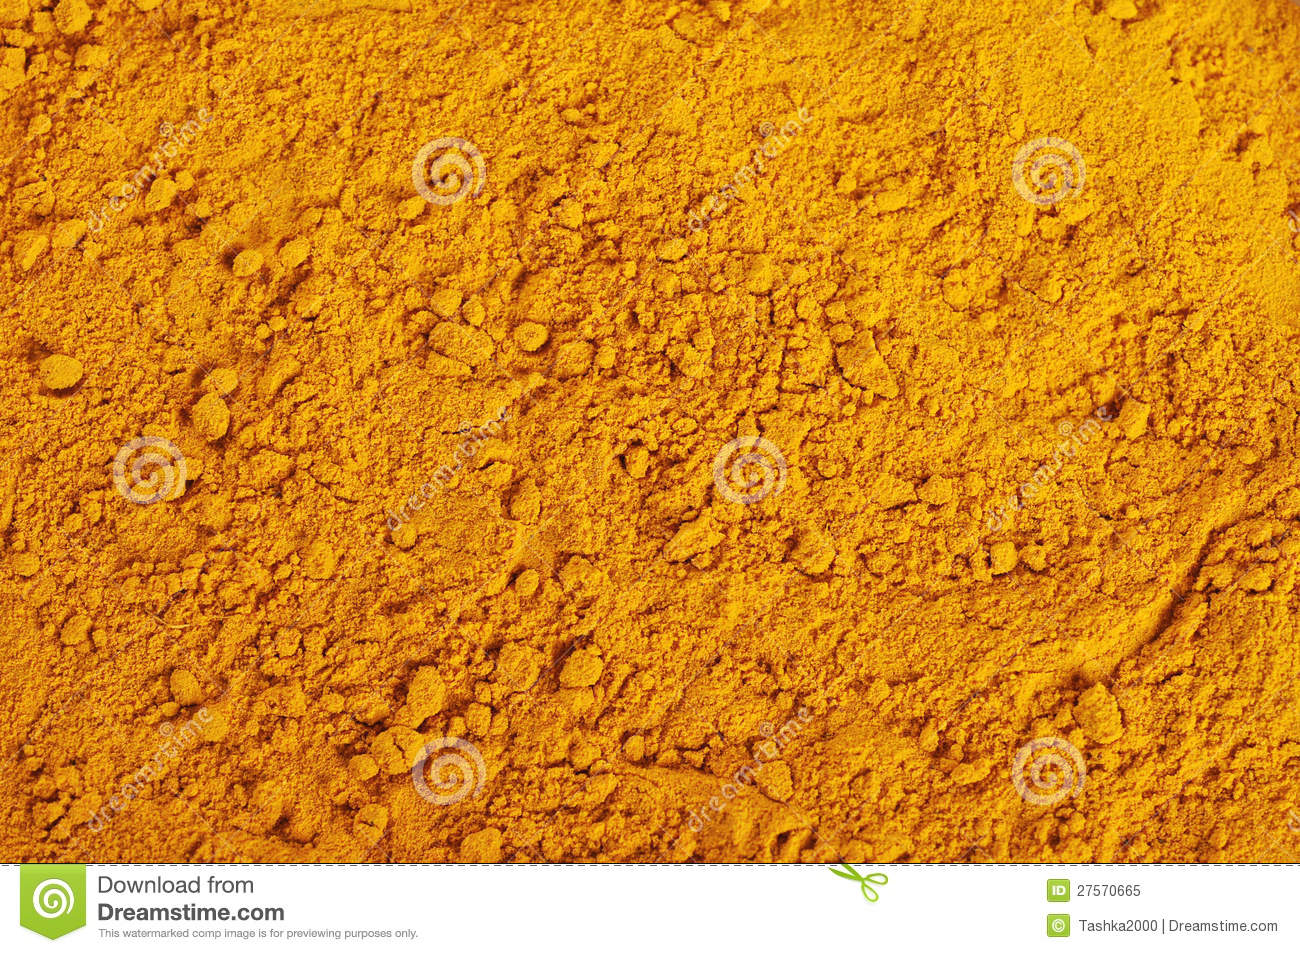 how to make turmeric powder from dry turmeric root